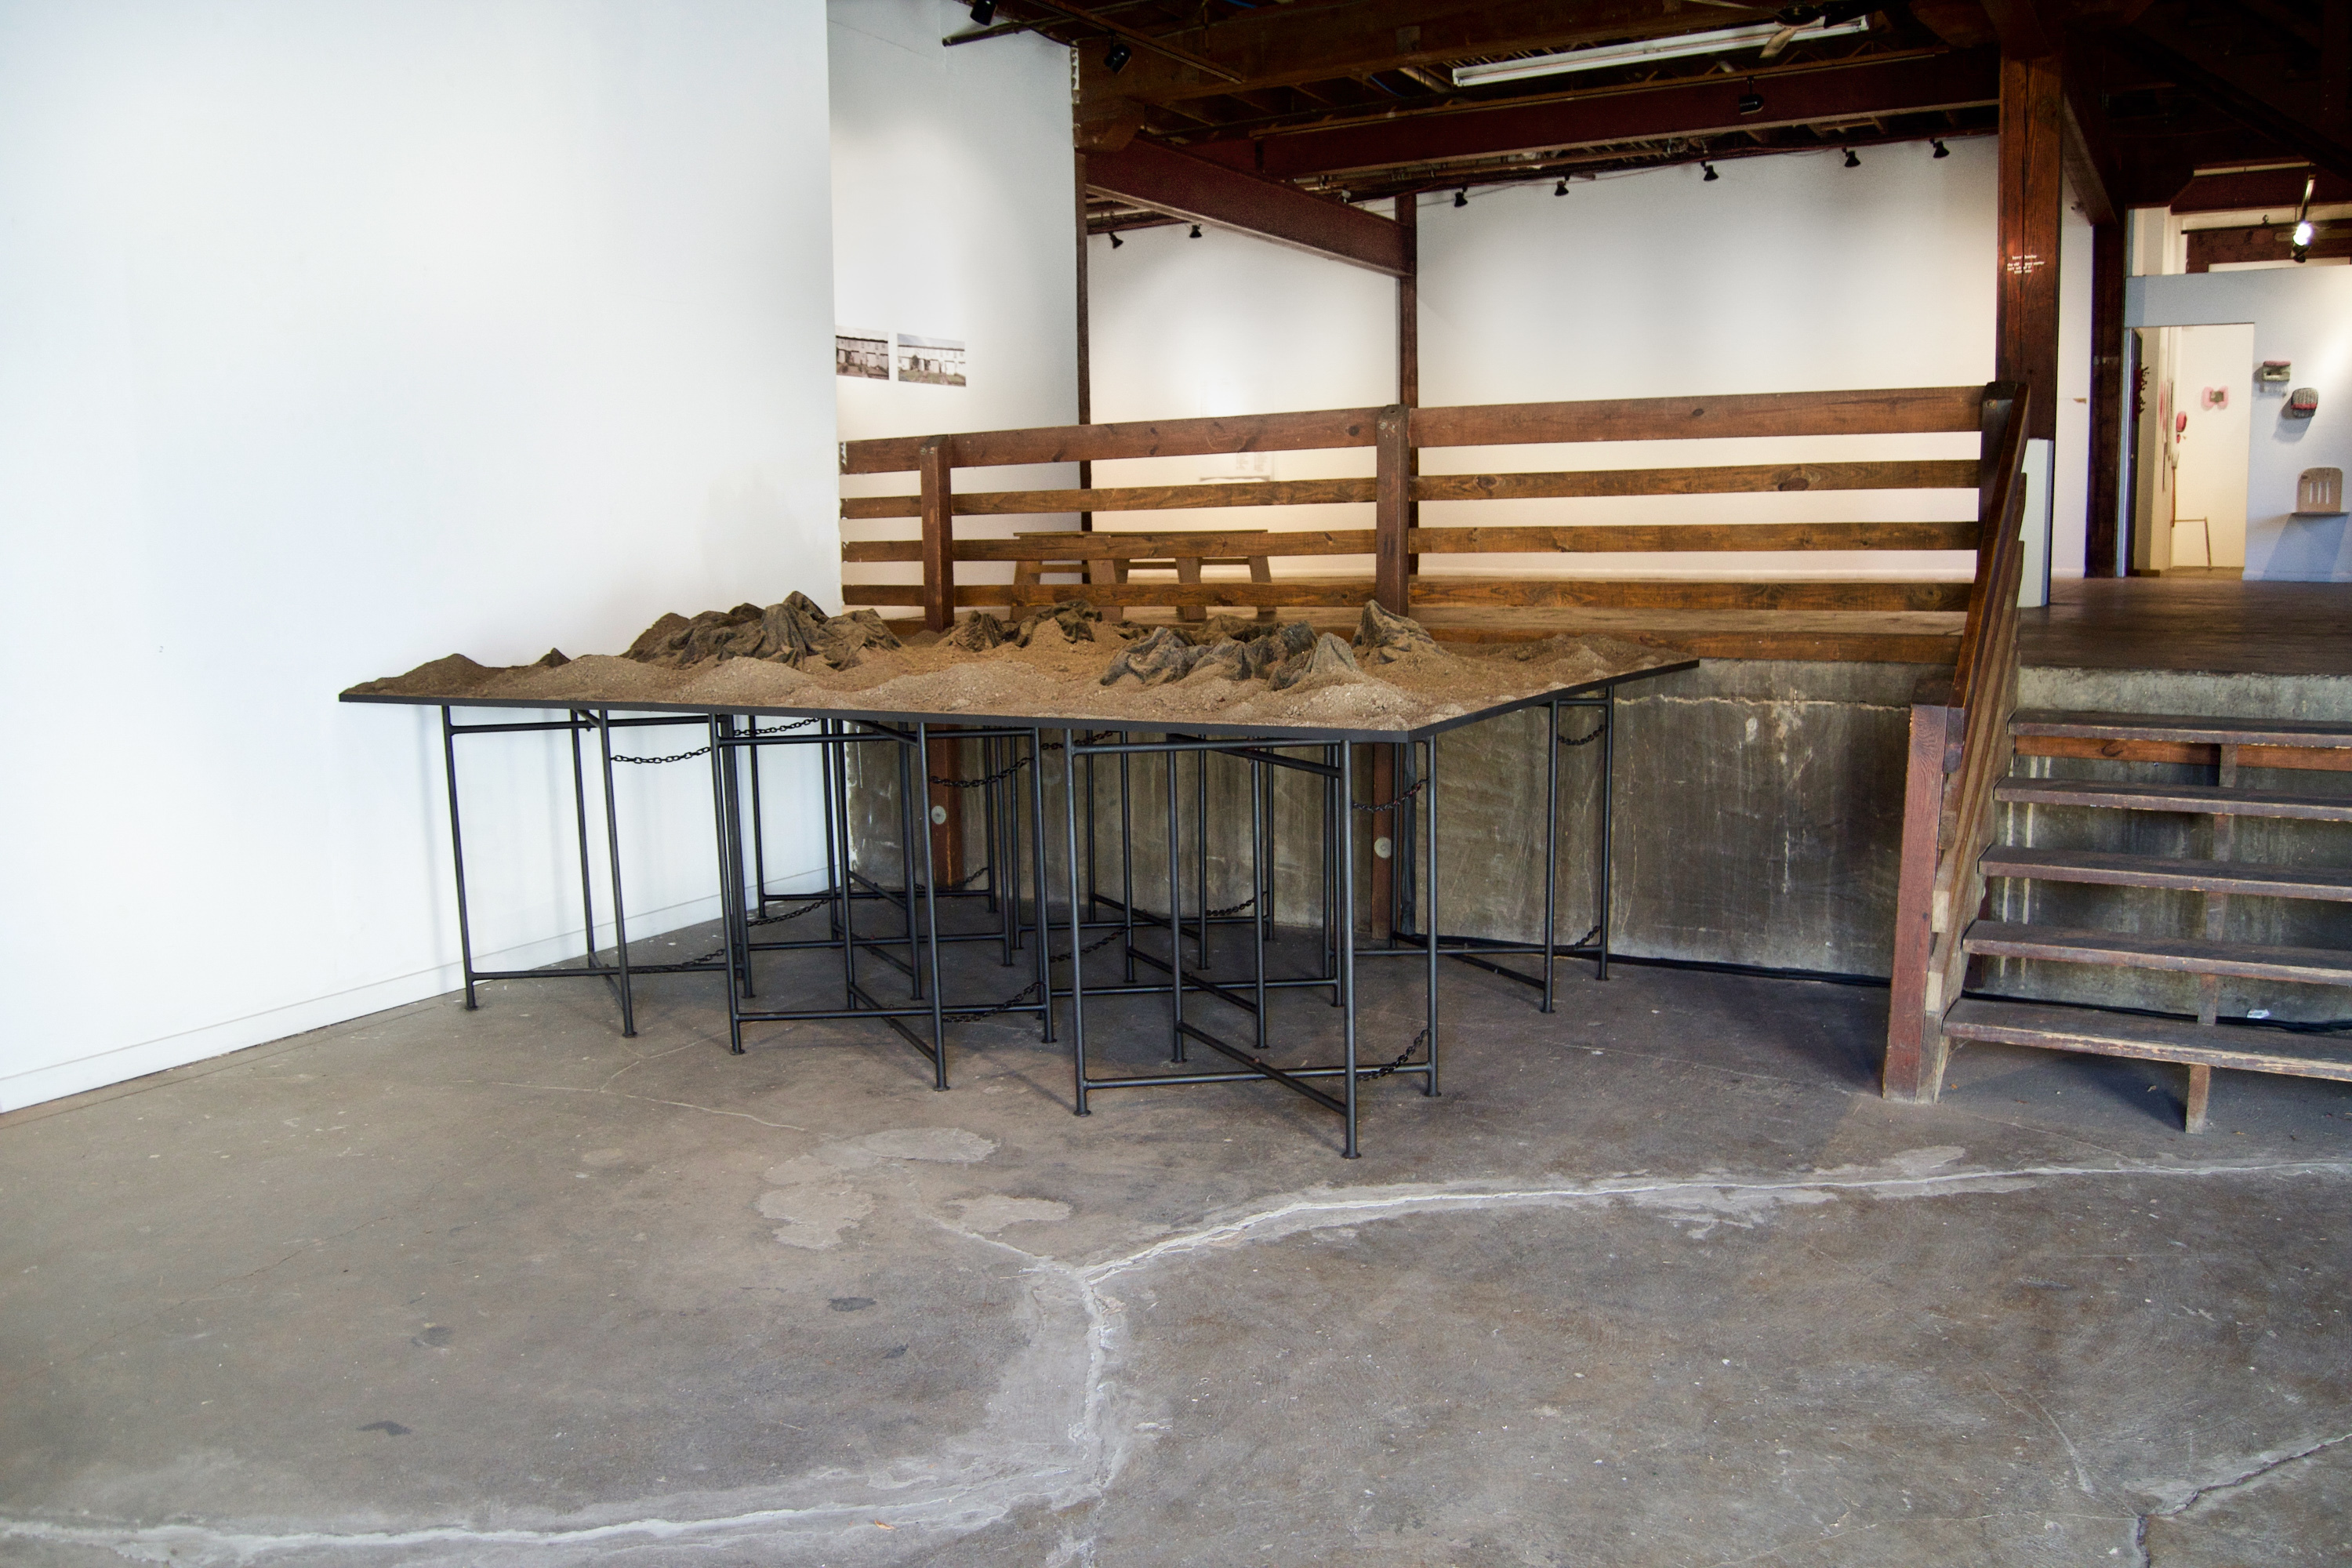 """Caroline Hatfield, Land and Water, 2019, 45"""" x 144"""" x 96"""", mortar stands, plywood, crushed recycled concrete, resin bonded concrete, aluminum, dyed water, water pumps"""